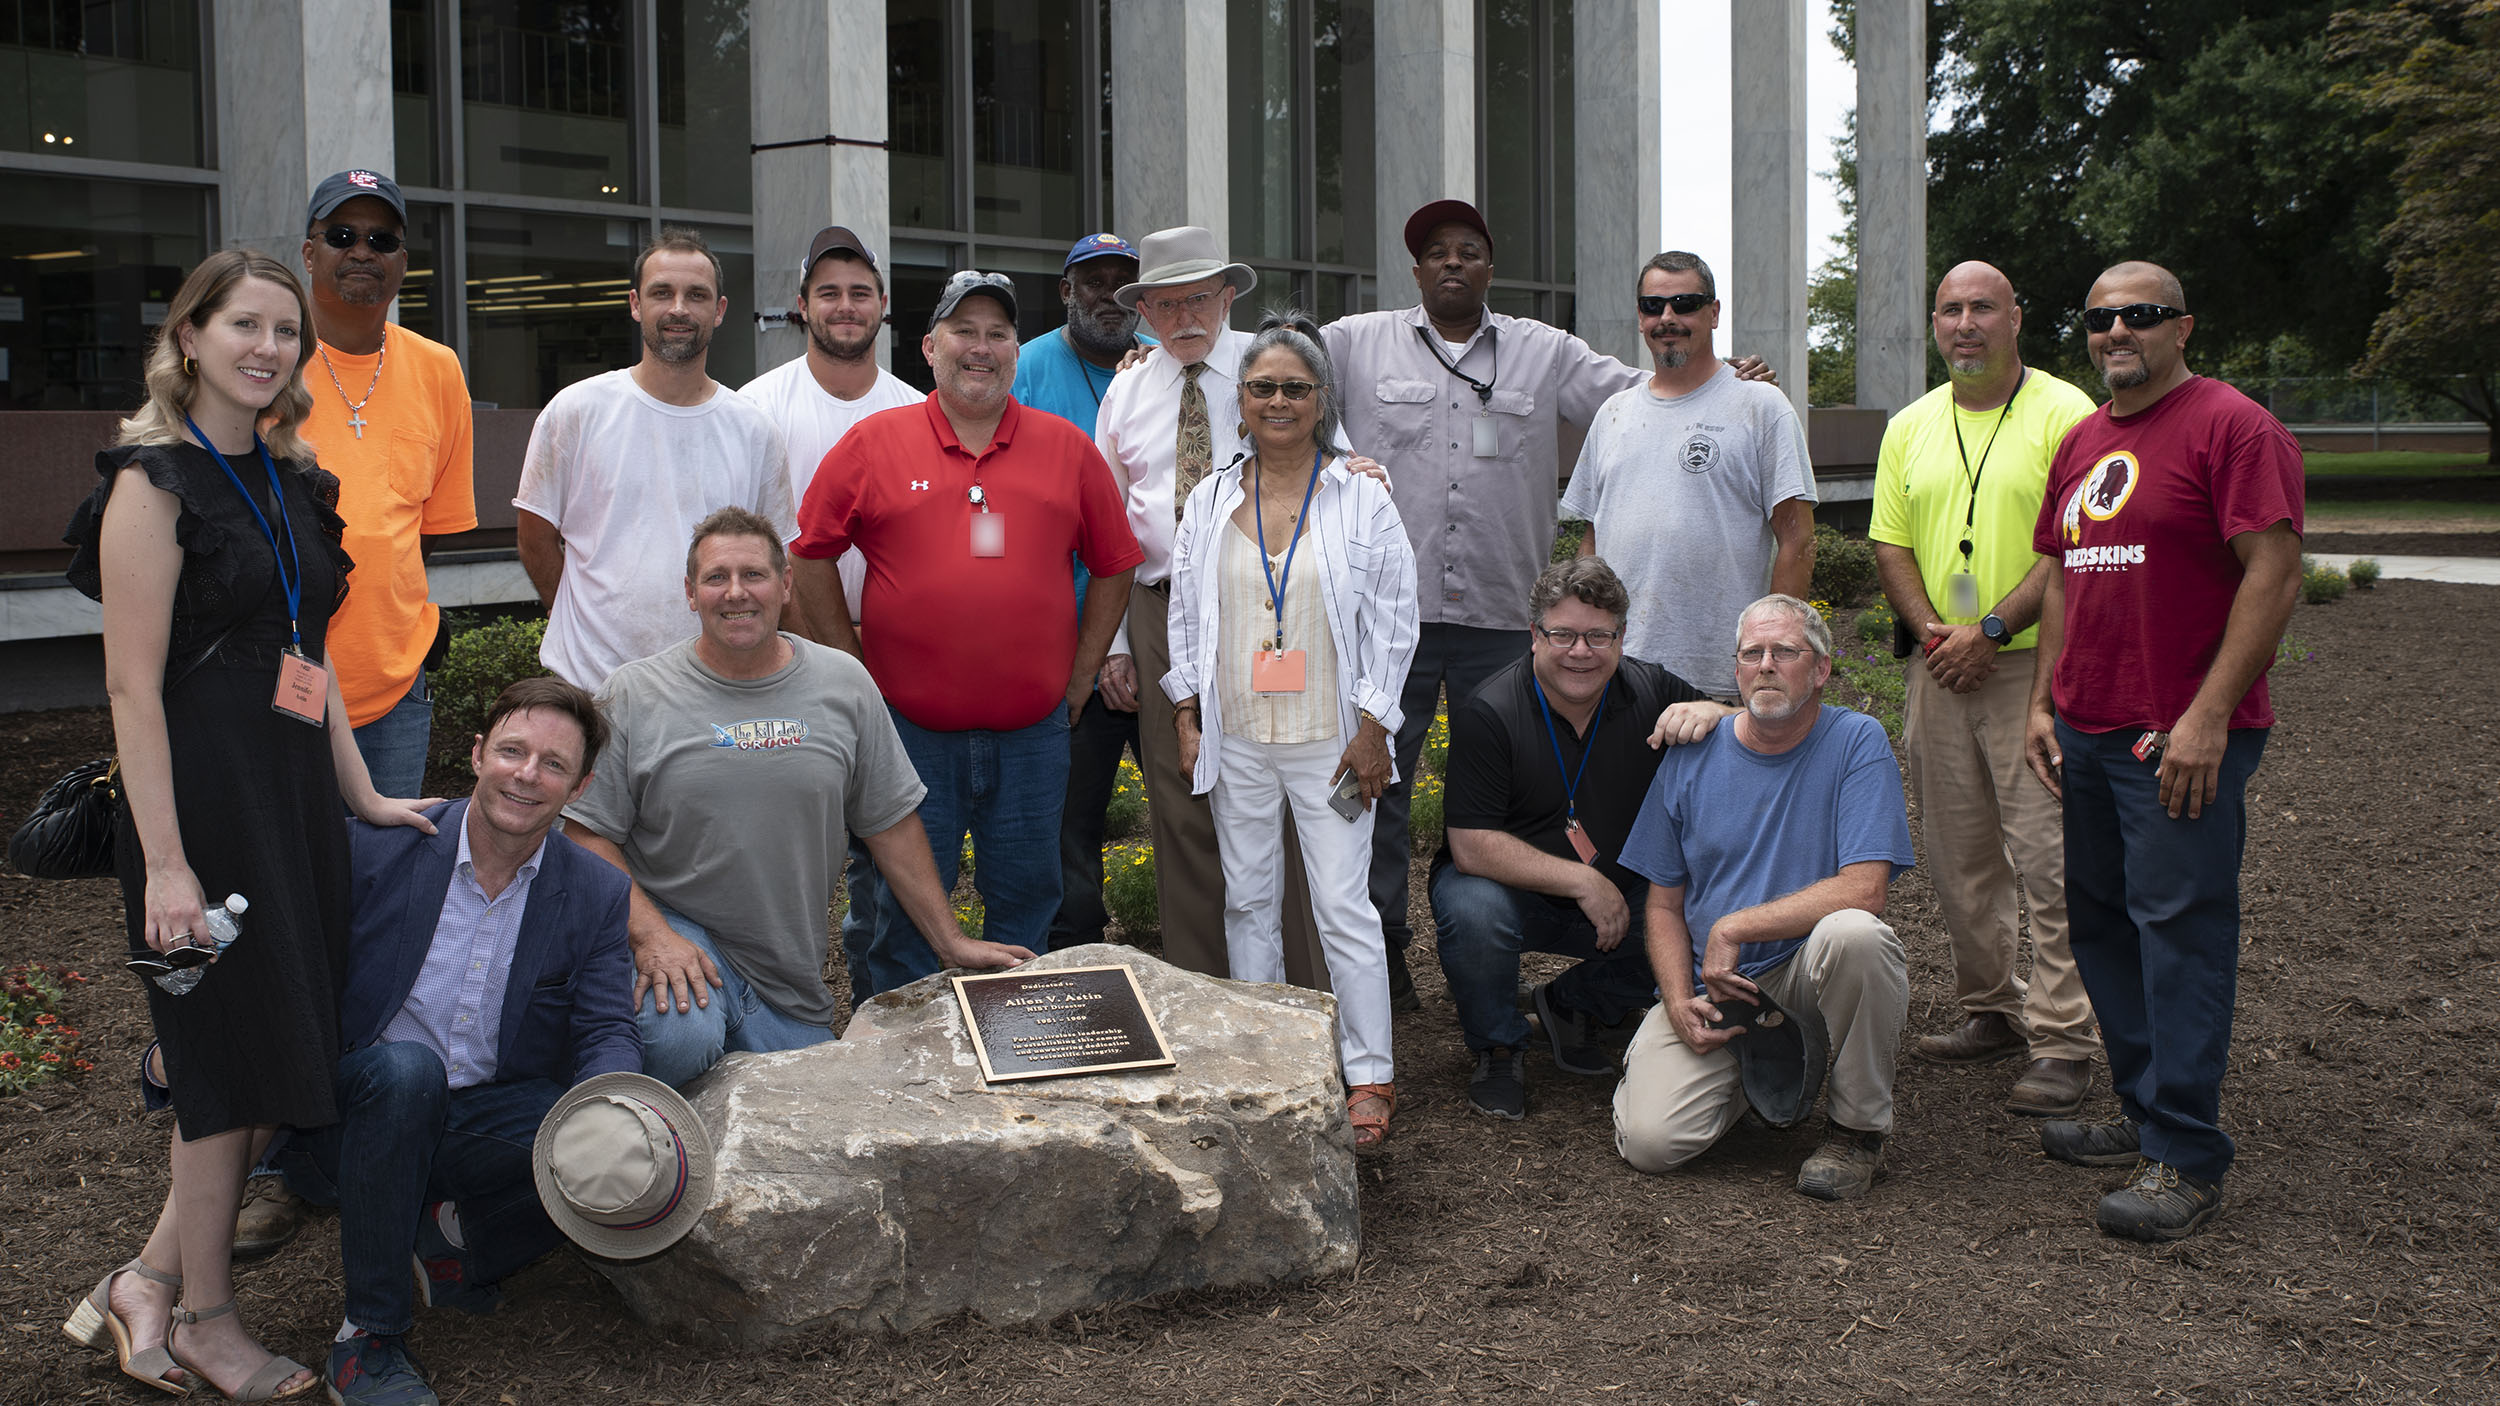 The Astins and the NIST grounds crew who constructed the Astin Garden. Pictured, left to right, are: Jennifer Astin, John Miller, Mackenzie Astin, John Hagan, Carey Clark, Jack Messner, Alteration and Maintenance Group Leader Robert Mathews, Nathaniel Brown, John Astin, Valerie Astin, Gregory Frazier, Sean Astin, John Murray, supervisory gardener Patrick Murphy, Joshua Jarrell and Rabie Abdel-Halim. Not pictured: Arthur Colemon.